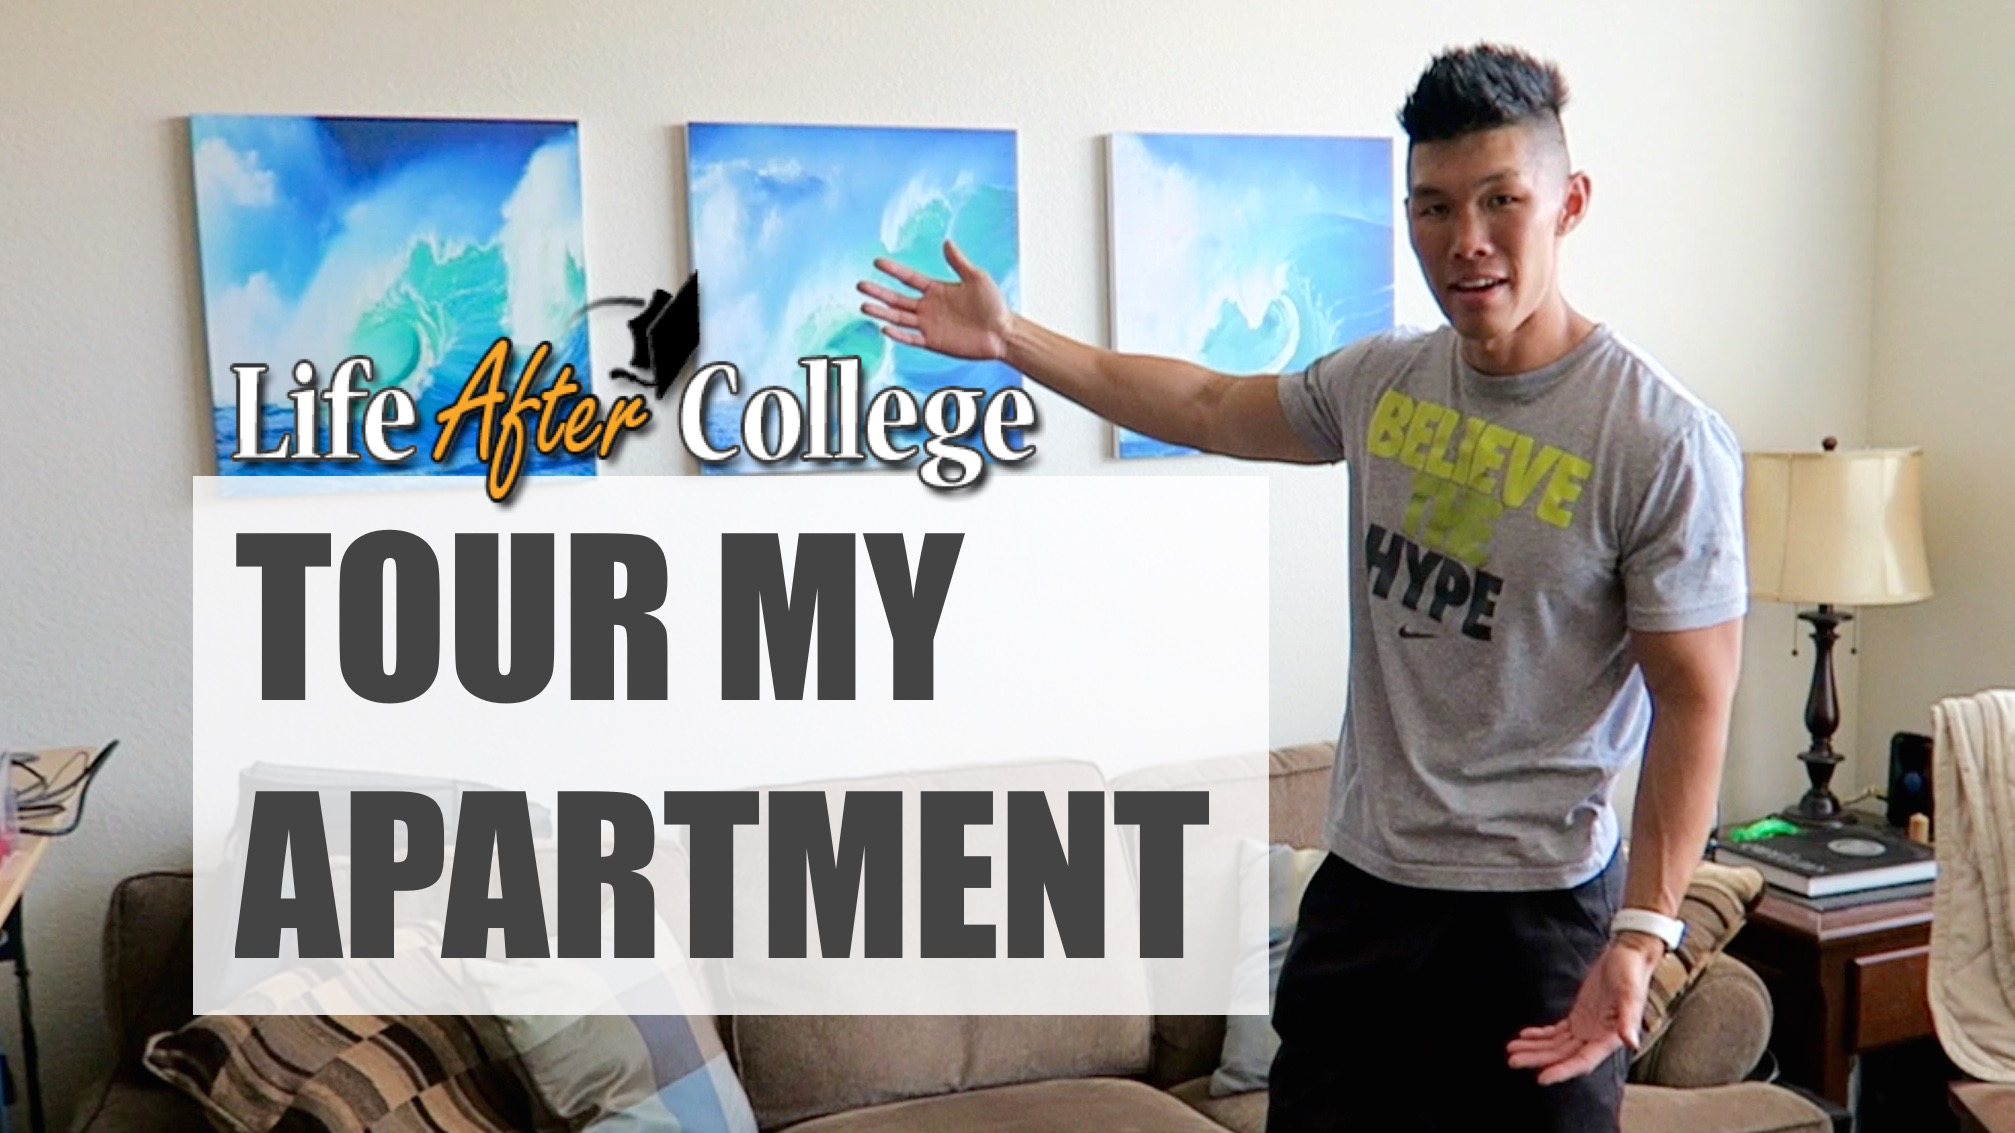 Apartment Room Tour